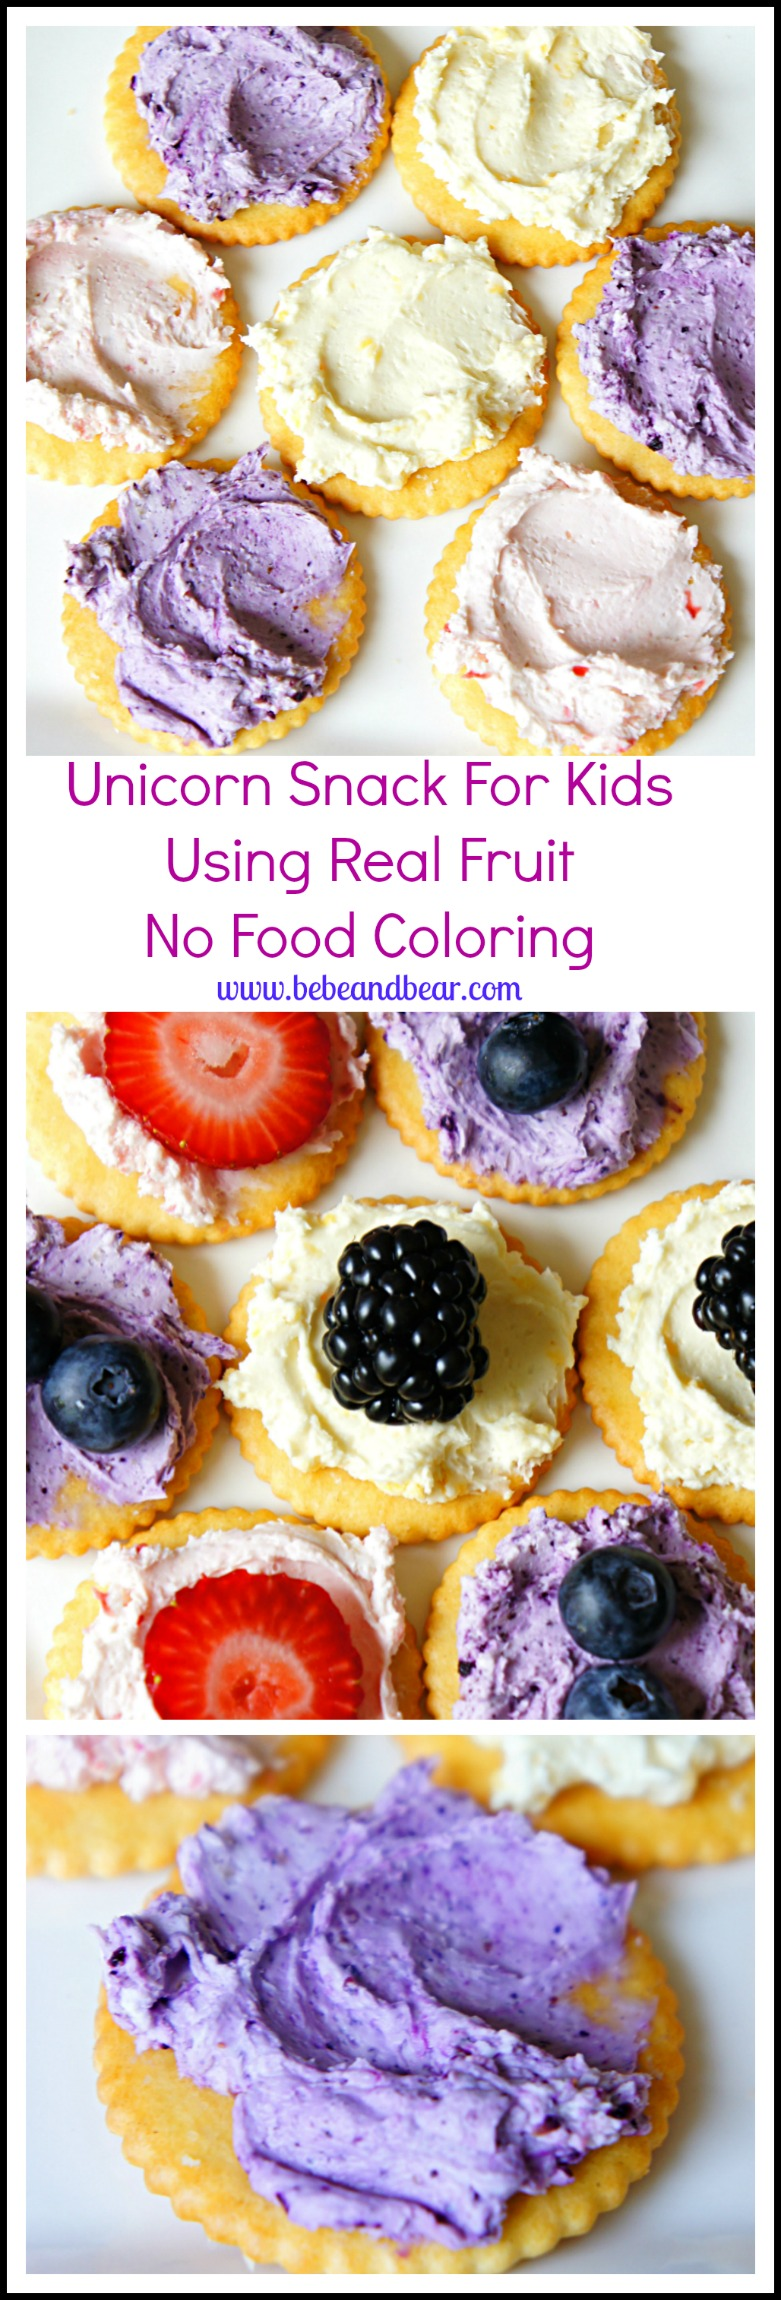 Unicorn Snack. Adding color to cream cheese using real fruit. No food coloing!